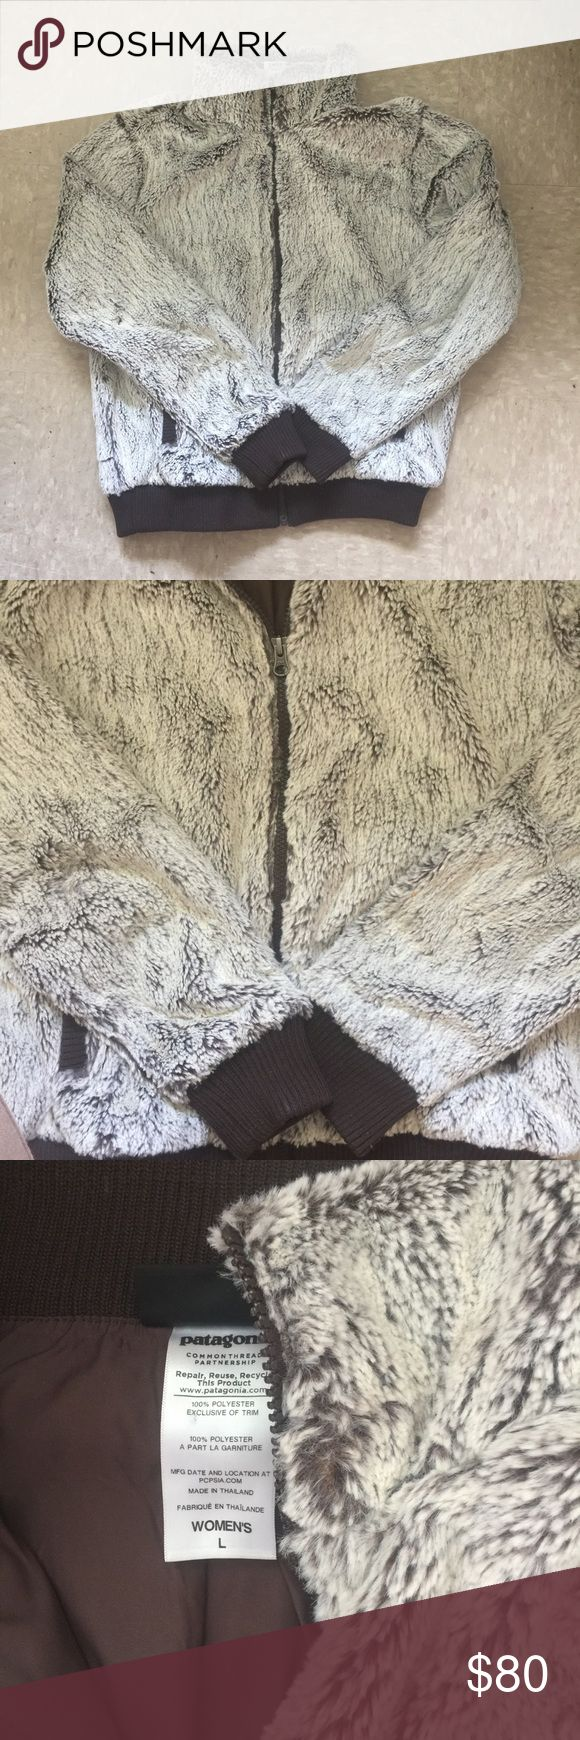 Patagonia Women's Faux Fur Jacket! 100% polyester super soft faux-fur jacket size Large only worn once! Patagonia Jackets & Coats